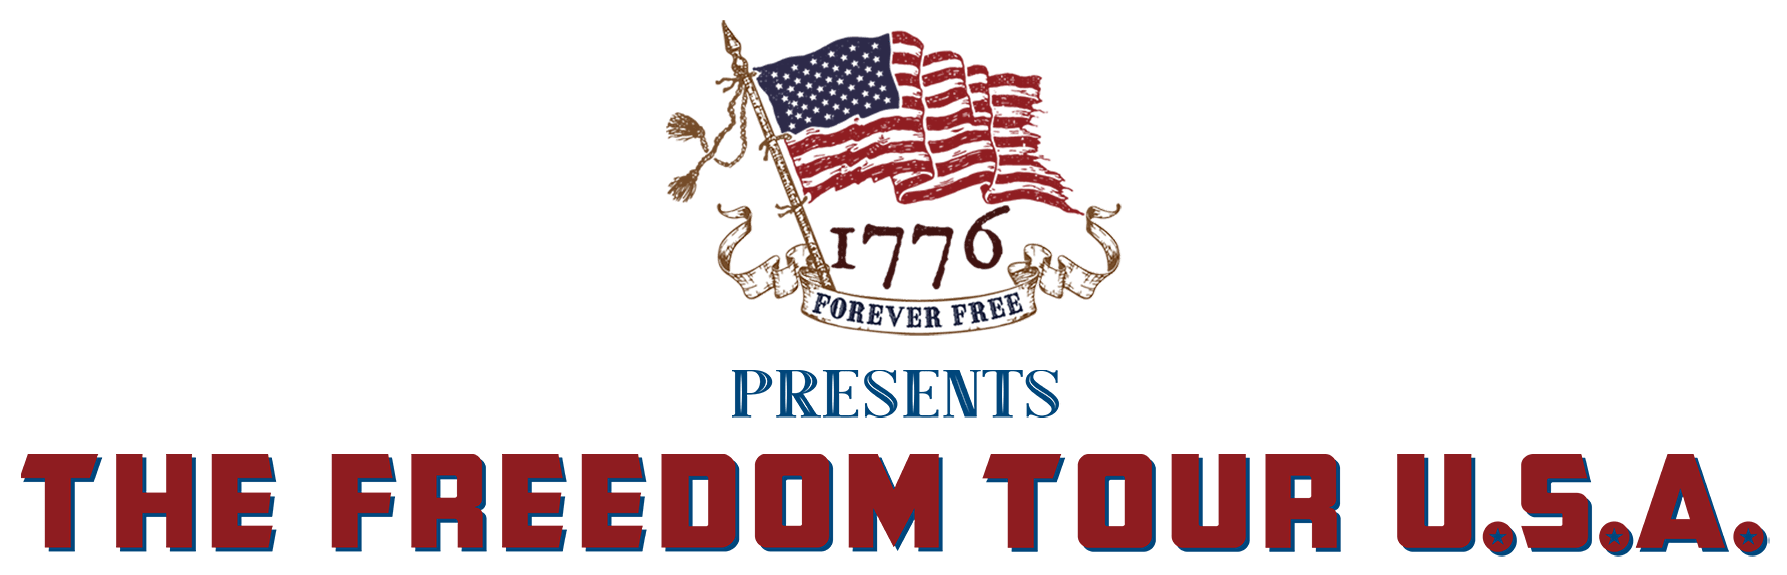 the freedom tour - slider banner graphics for homepage-min